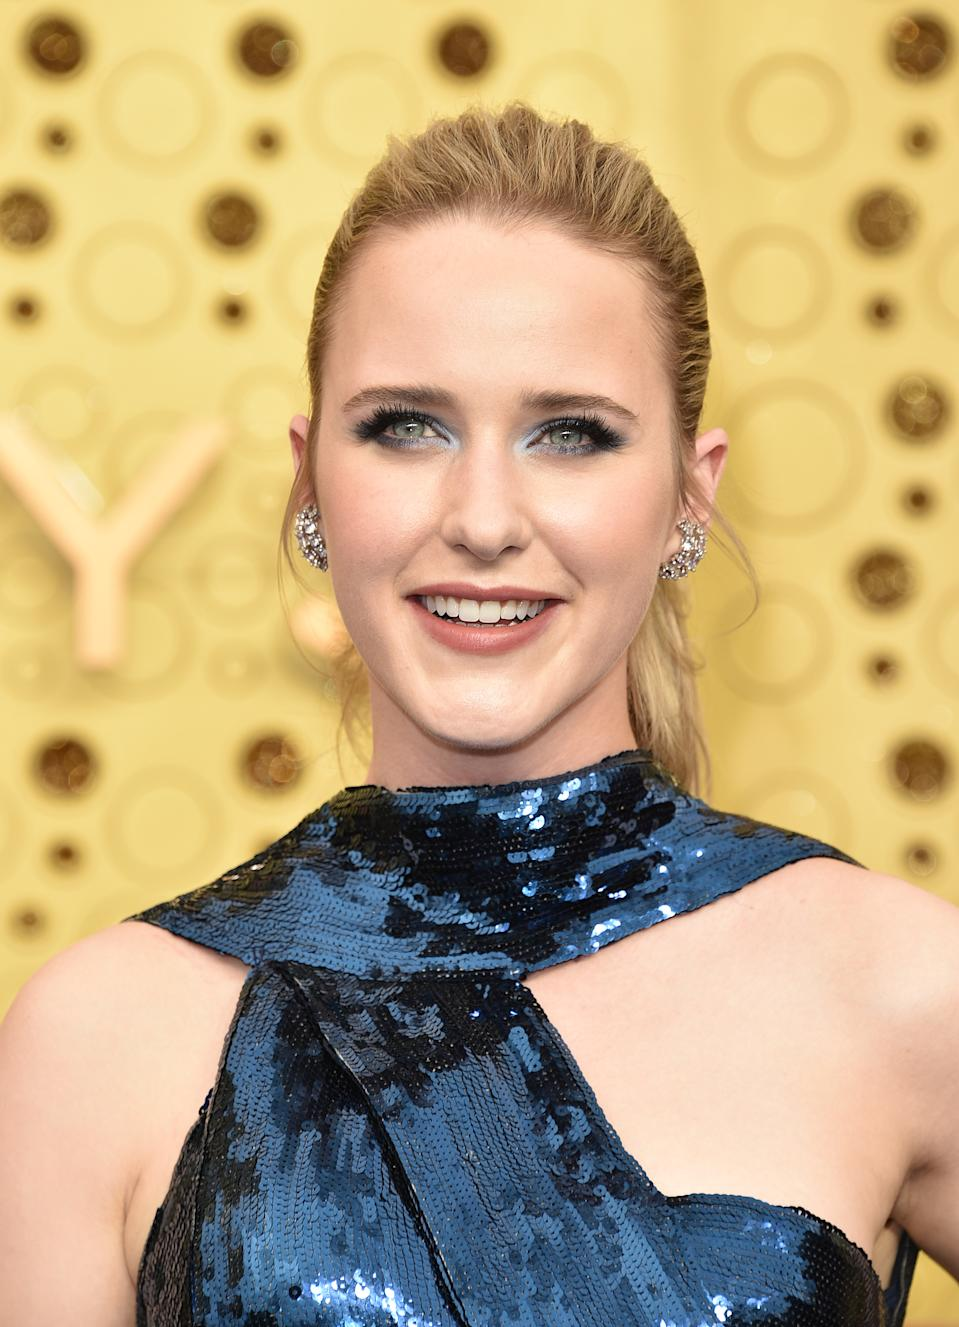 LOS ANGELES, CALIFORNIA - SEPTEMBER 22:  Rachel Brosnahan attends the 71st Emmy Awards at Microsoft Theater on September 22, 2019 in Los Angeles, California. (Photo by John Shearer/Getty Images)